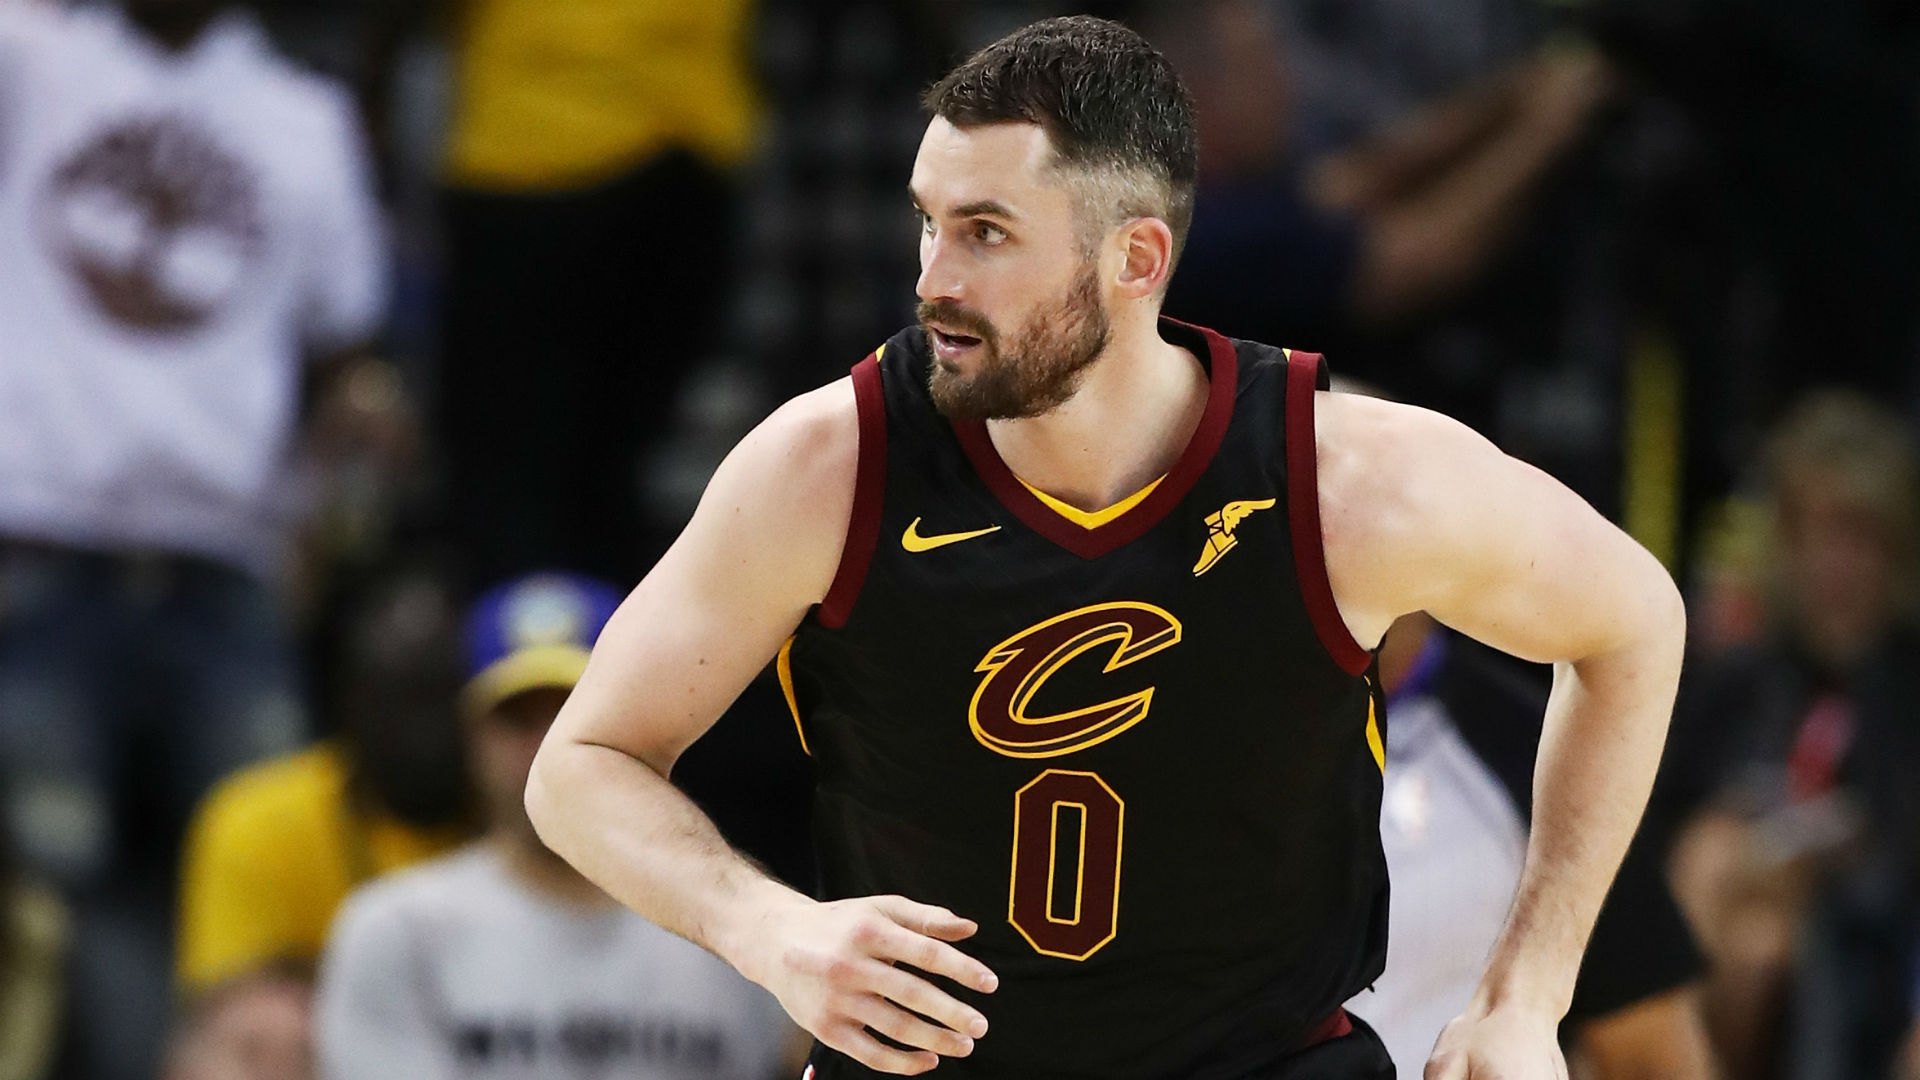 Cavs' Kevin Love wanted reassurance before signing extension